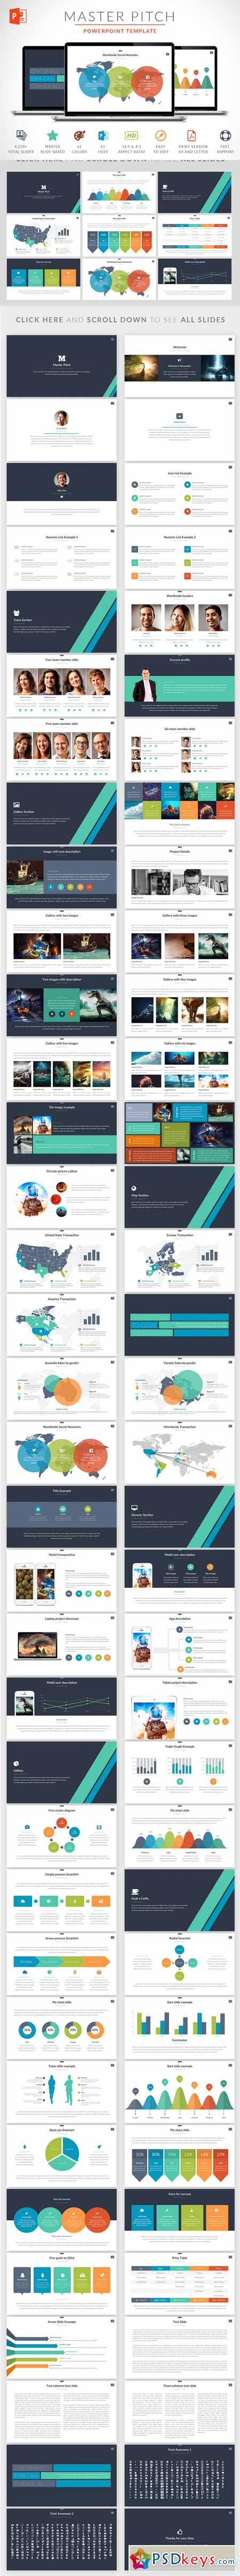 master pitch powerpoint template 291890 » free download photoshop, Modern powerpoint